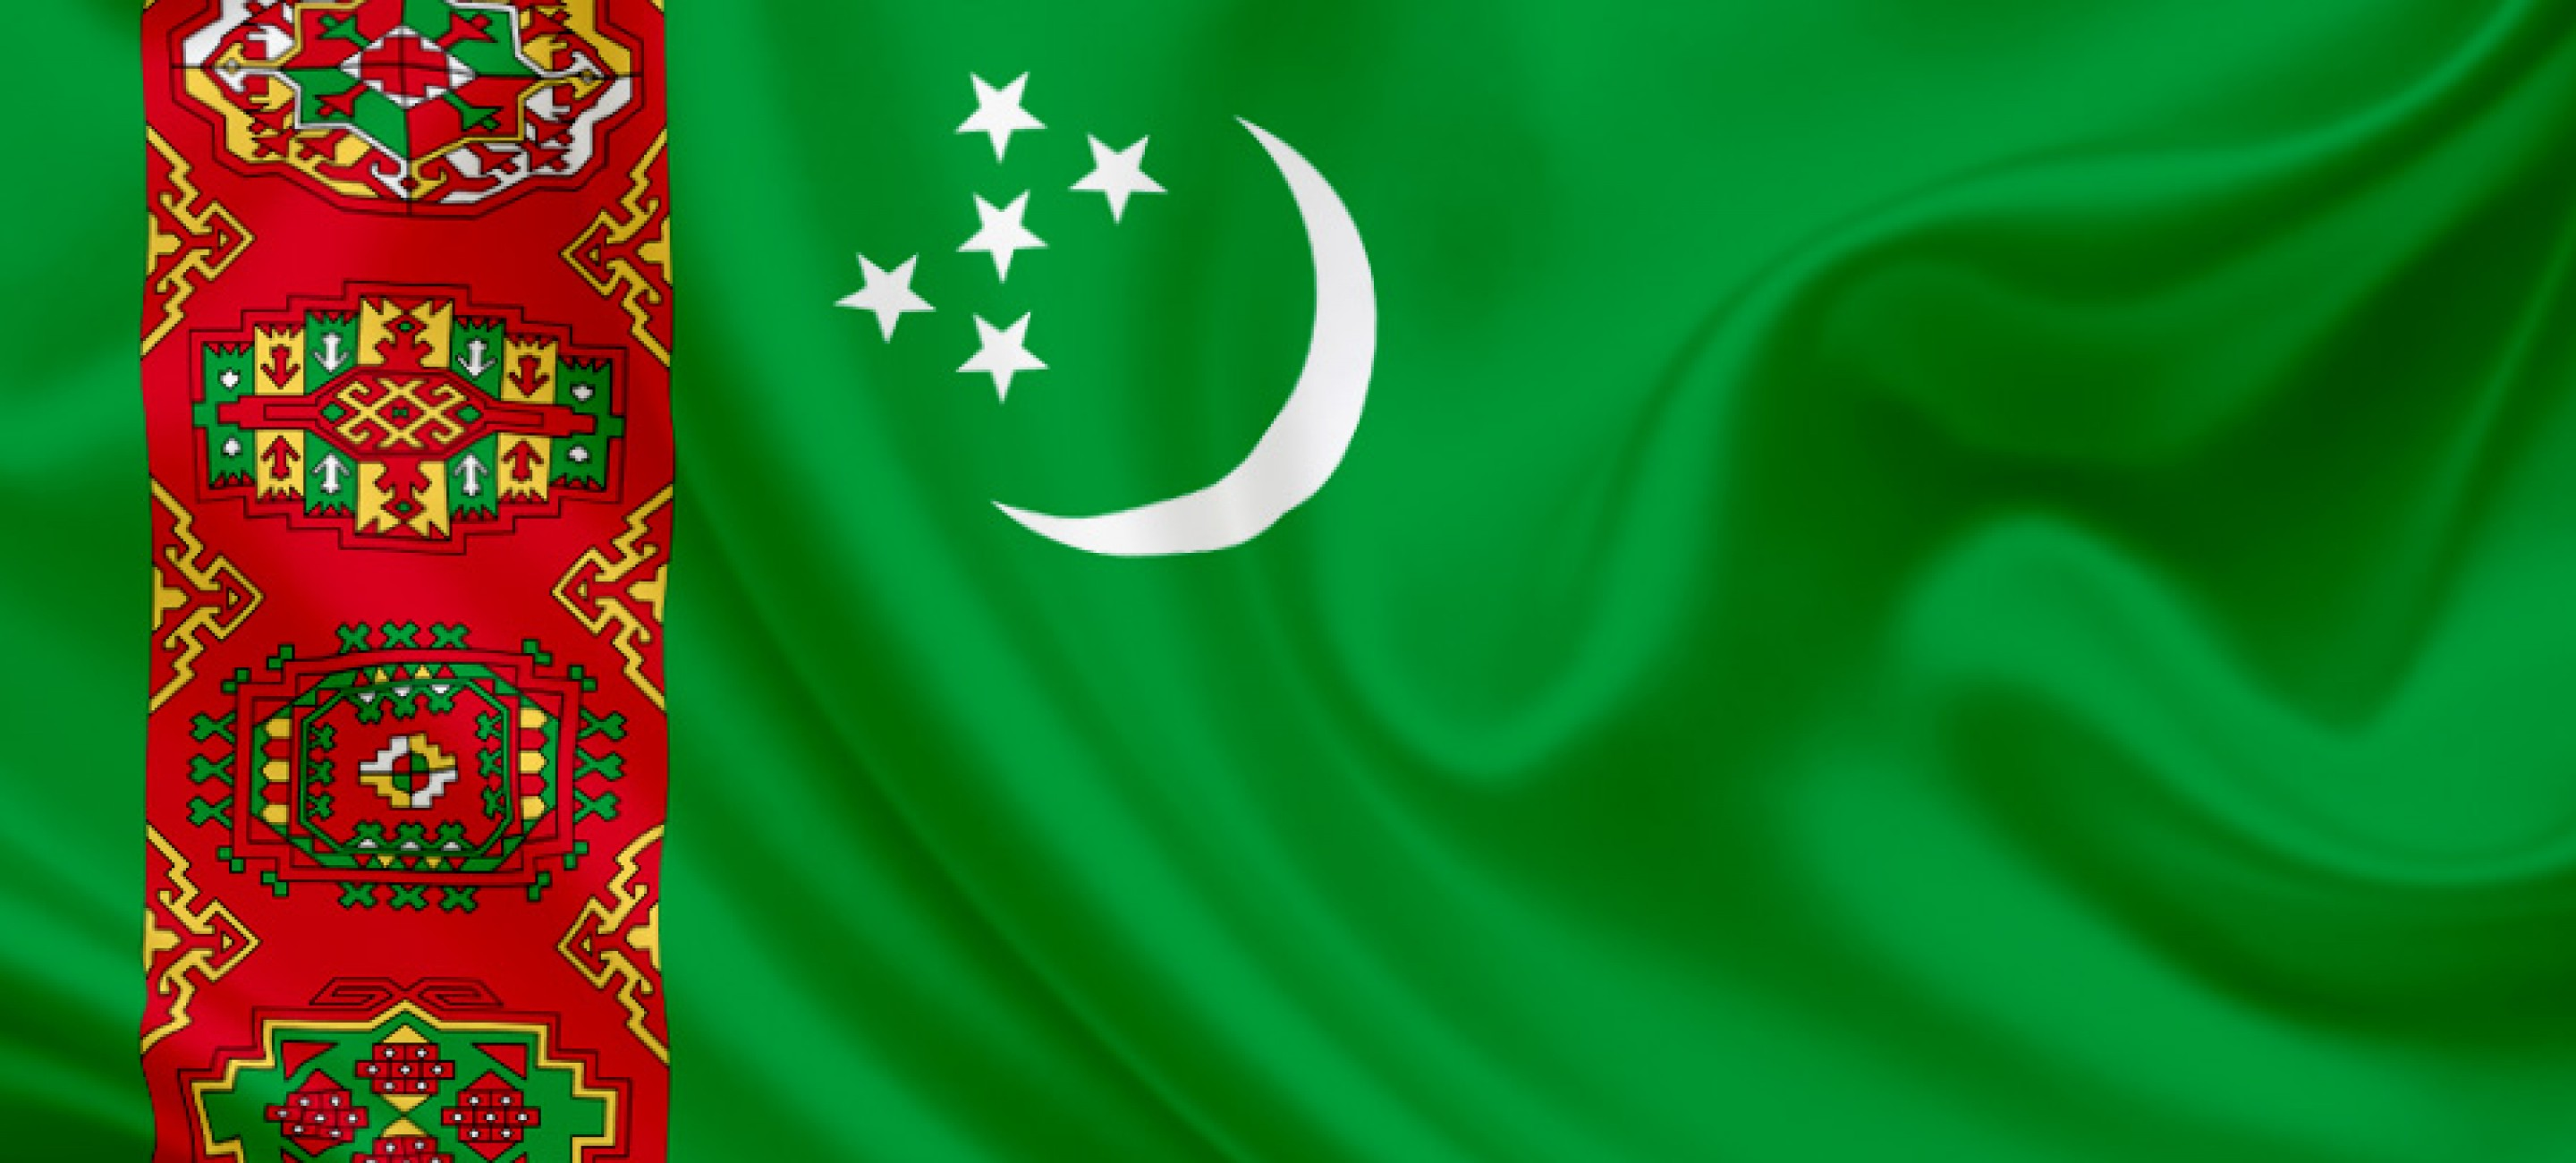 THE NEXT ROUND OF POLITICAL CONSULTATIONS BETWEEN TURKMENISTAN AND PAKISTAN TOOK PLACE IN ISLAMABAD